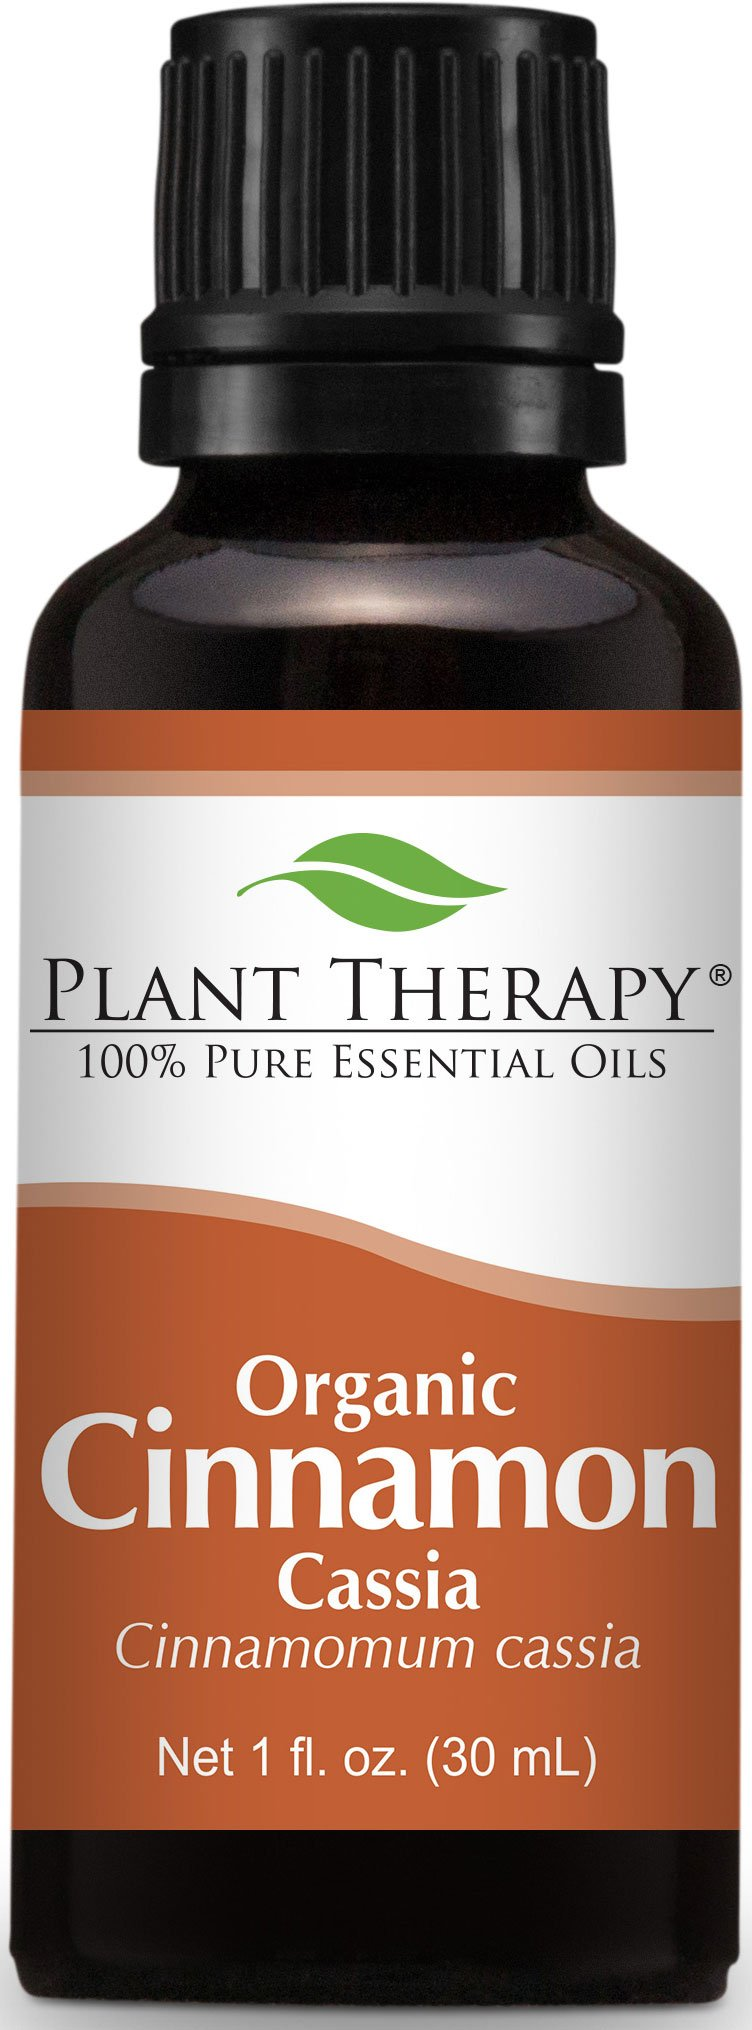 Plant Therapy USDA Certified Organic Cinnamon Cassia Essential Oil. 30 ml (1 oz). 100% Pure, Undiluted, Therapeutic Grade. (Pack of 12)